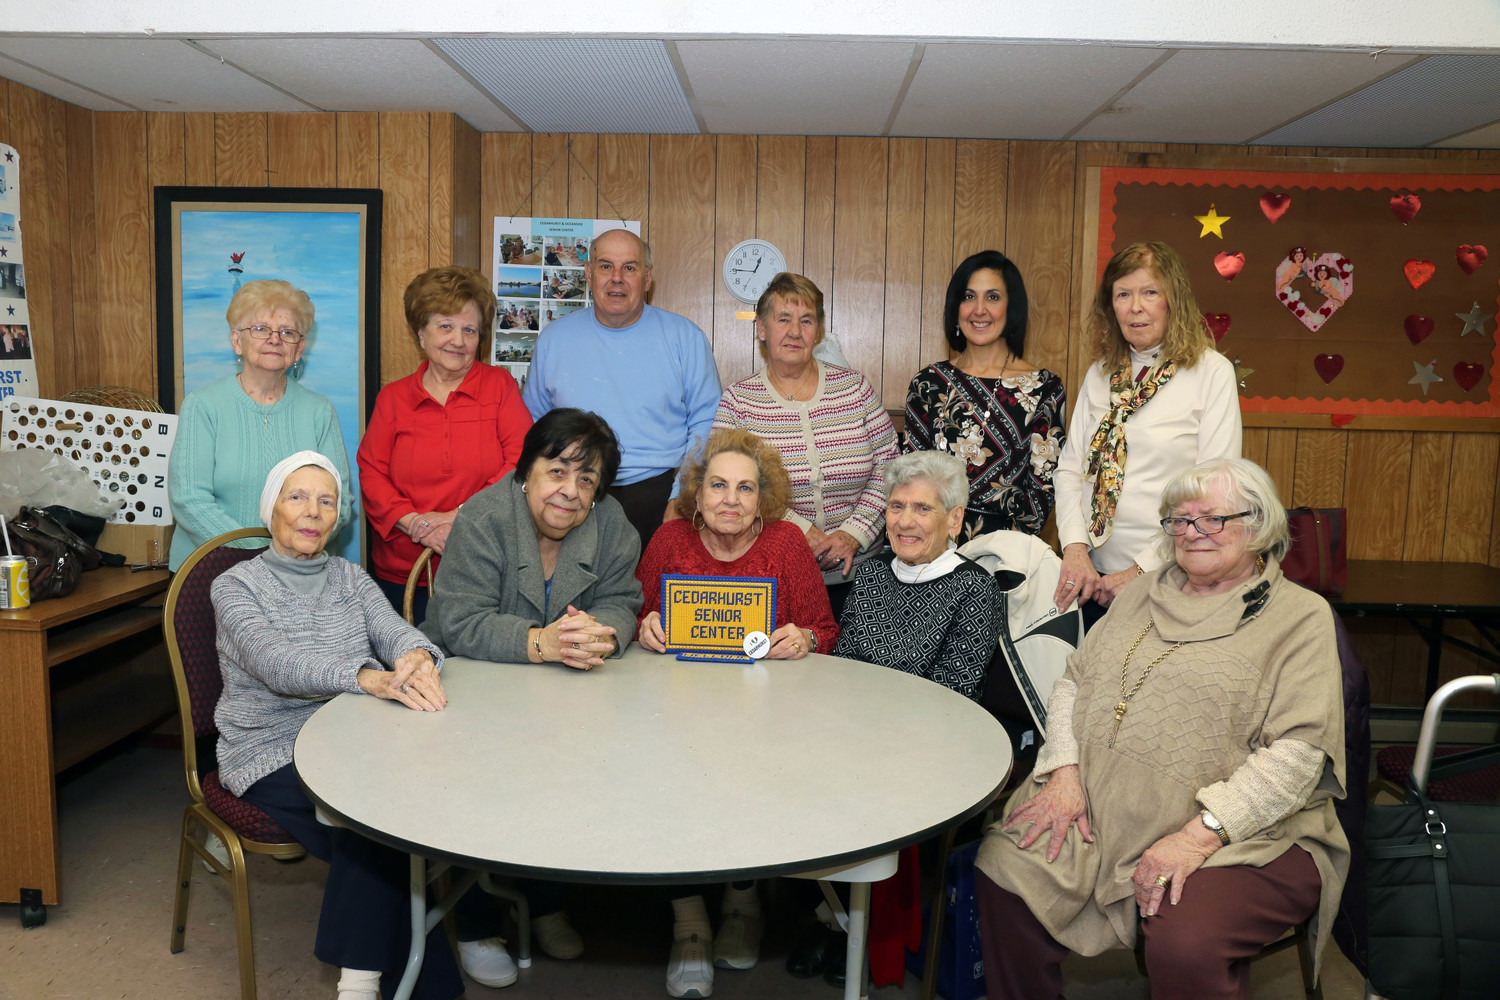 Cedarhurst Senior Center members were visited by Town of Hempstead Clerk Sylvia Cabana last month. Seated from left were Marge Goldman, Rose Perrino, Gladys Mauro. Jenny Zarro and Caroline Sterlacci. Standing from left were Gloria Napolitano, Helen O'Brien, Robert Elio, Ida Venezio, Cabana and Mallazzo.